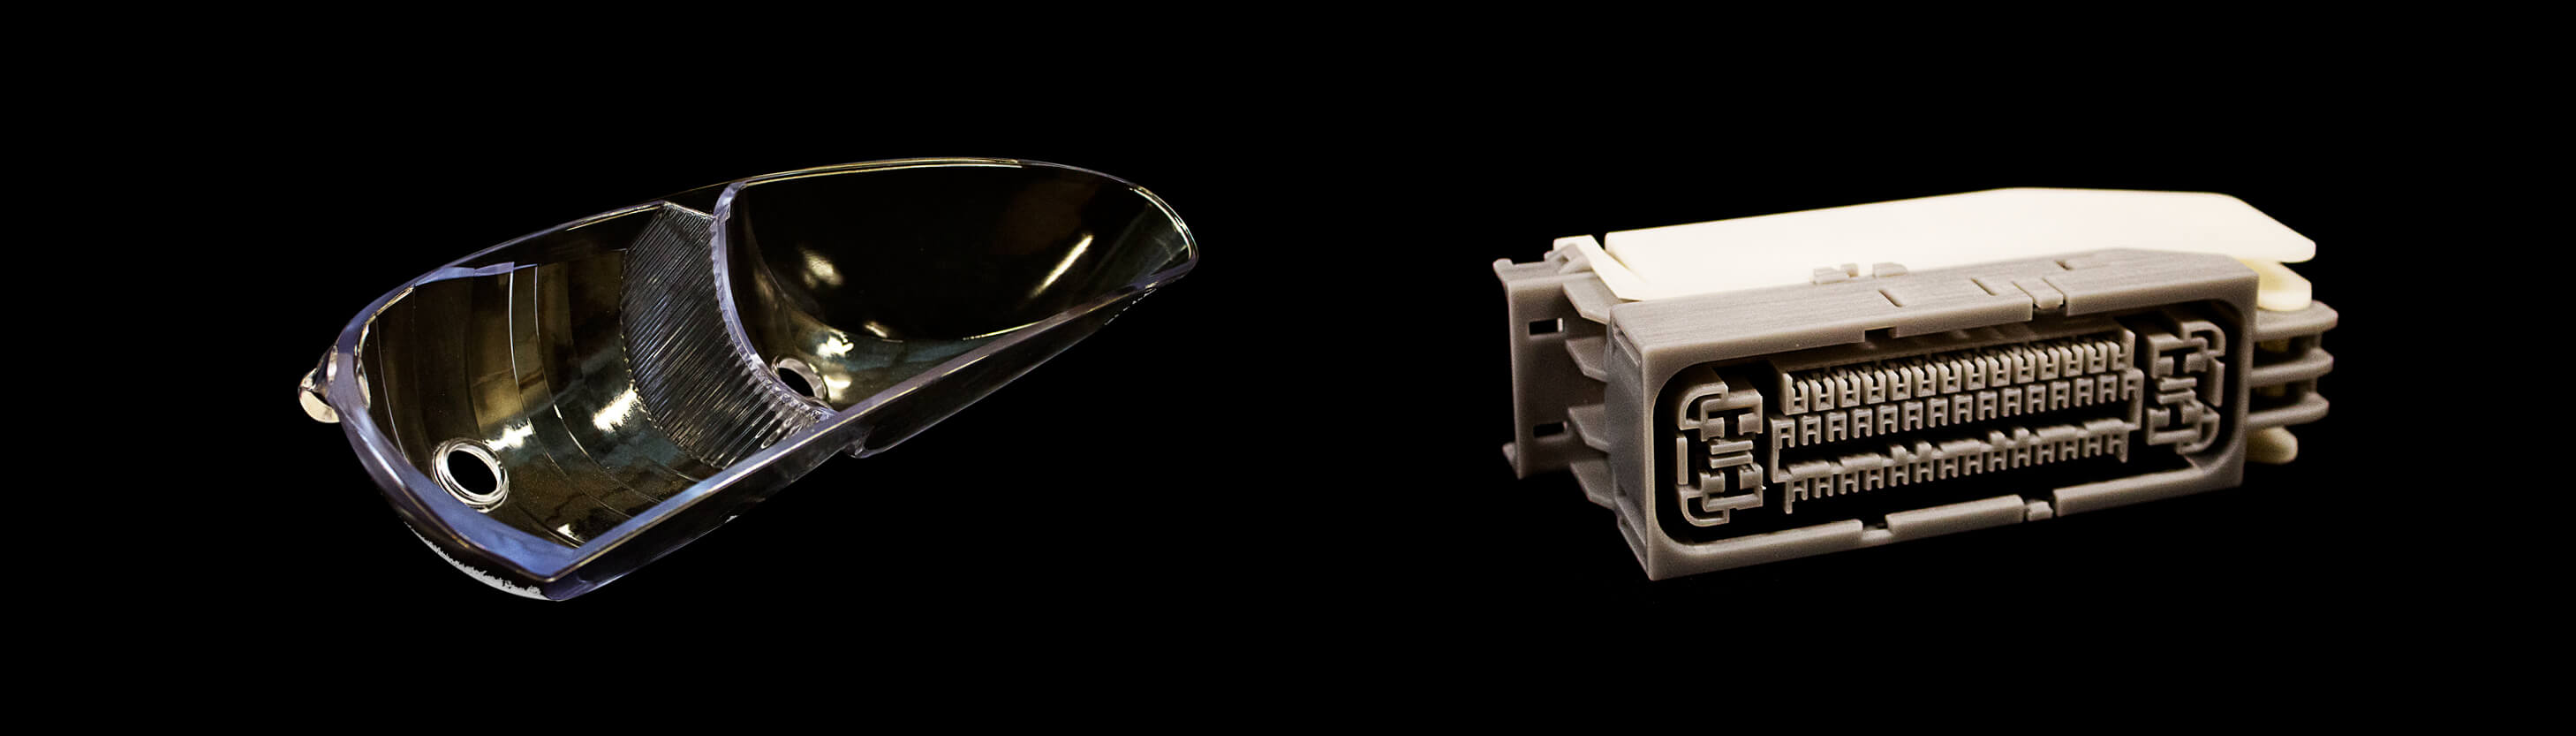 Stereolithography: 3D Printing by Laser solidyfing Liquid-Resin